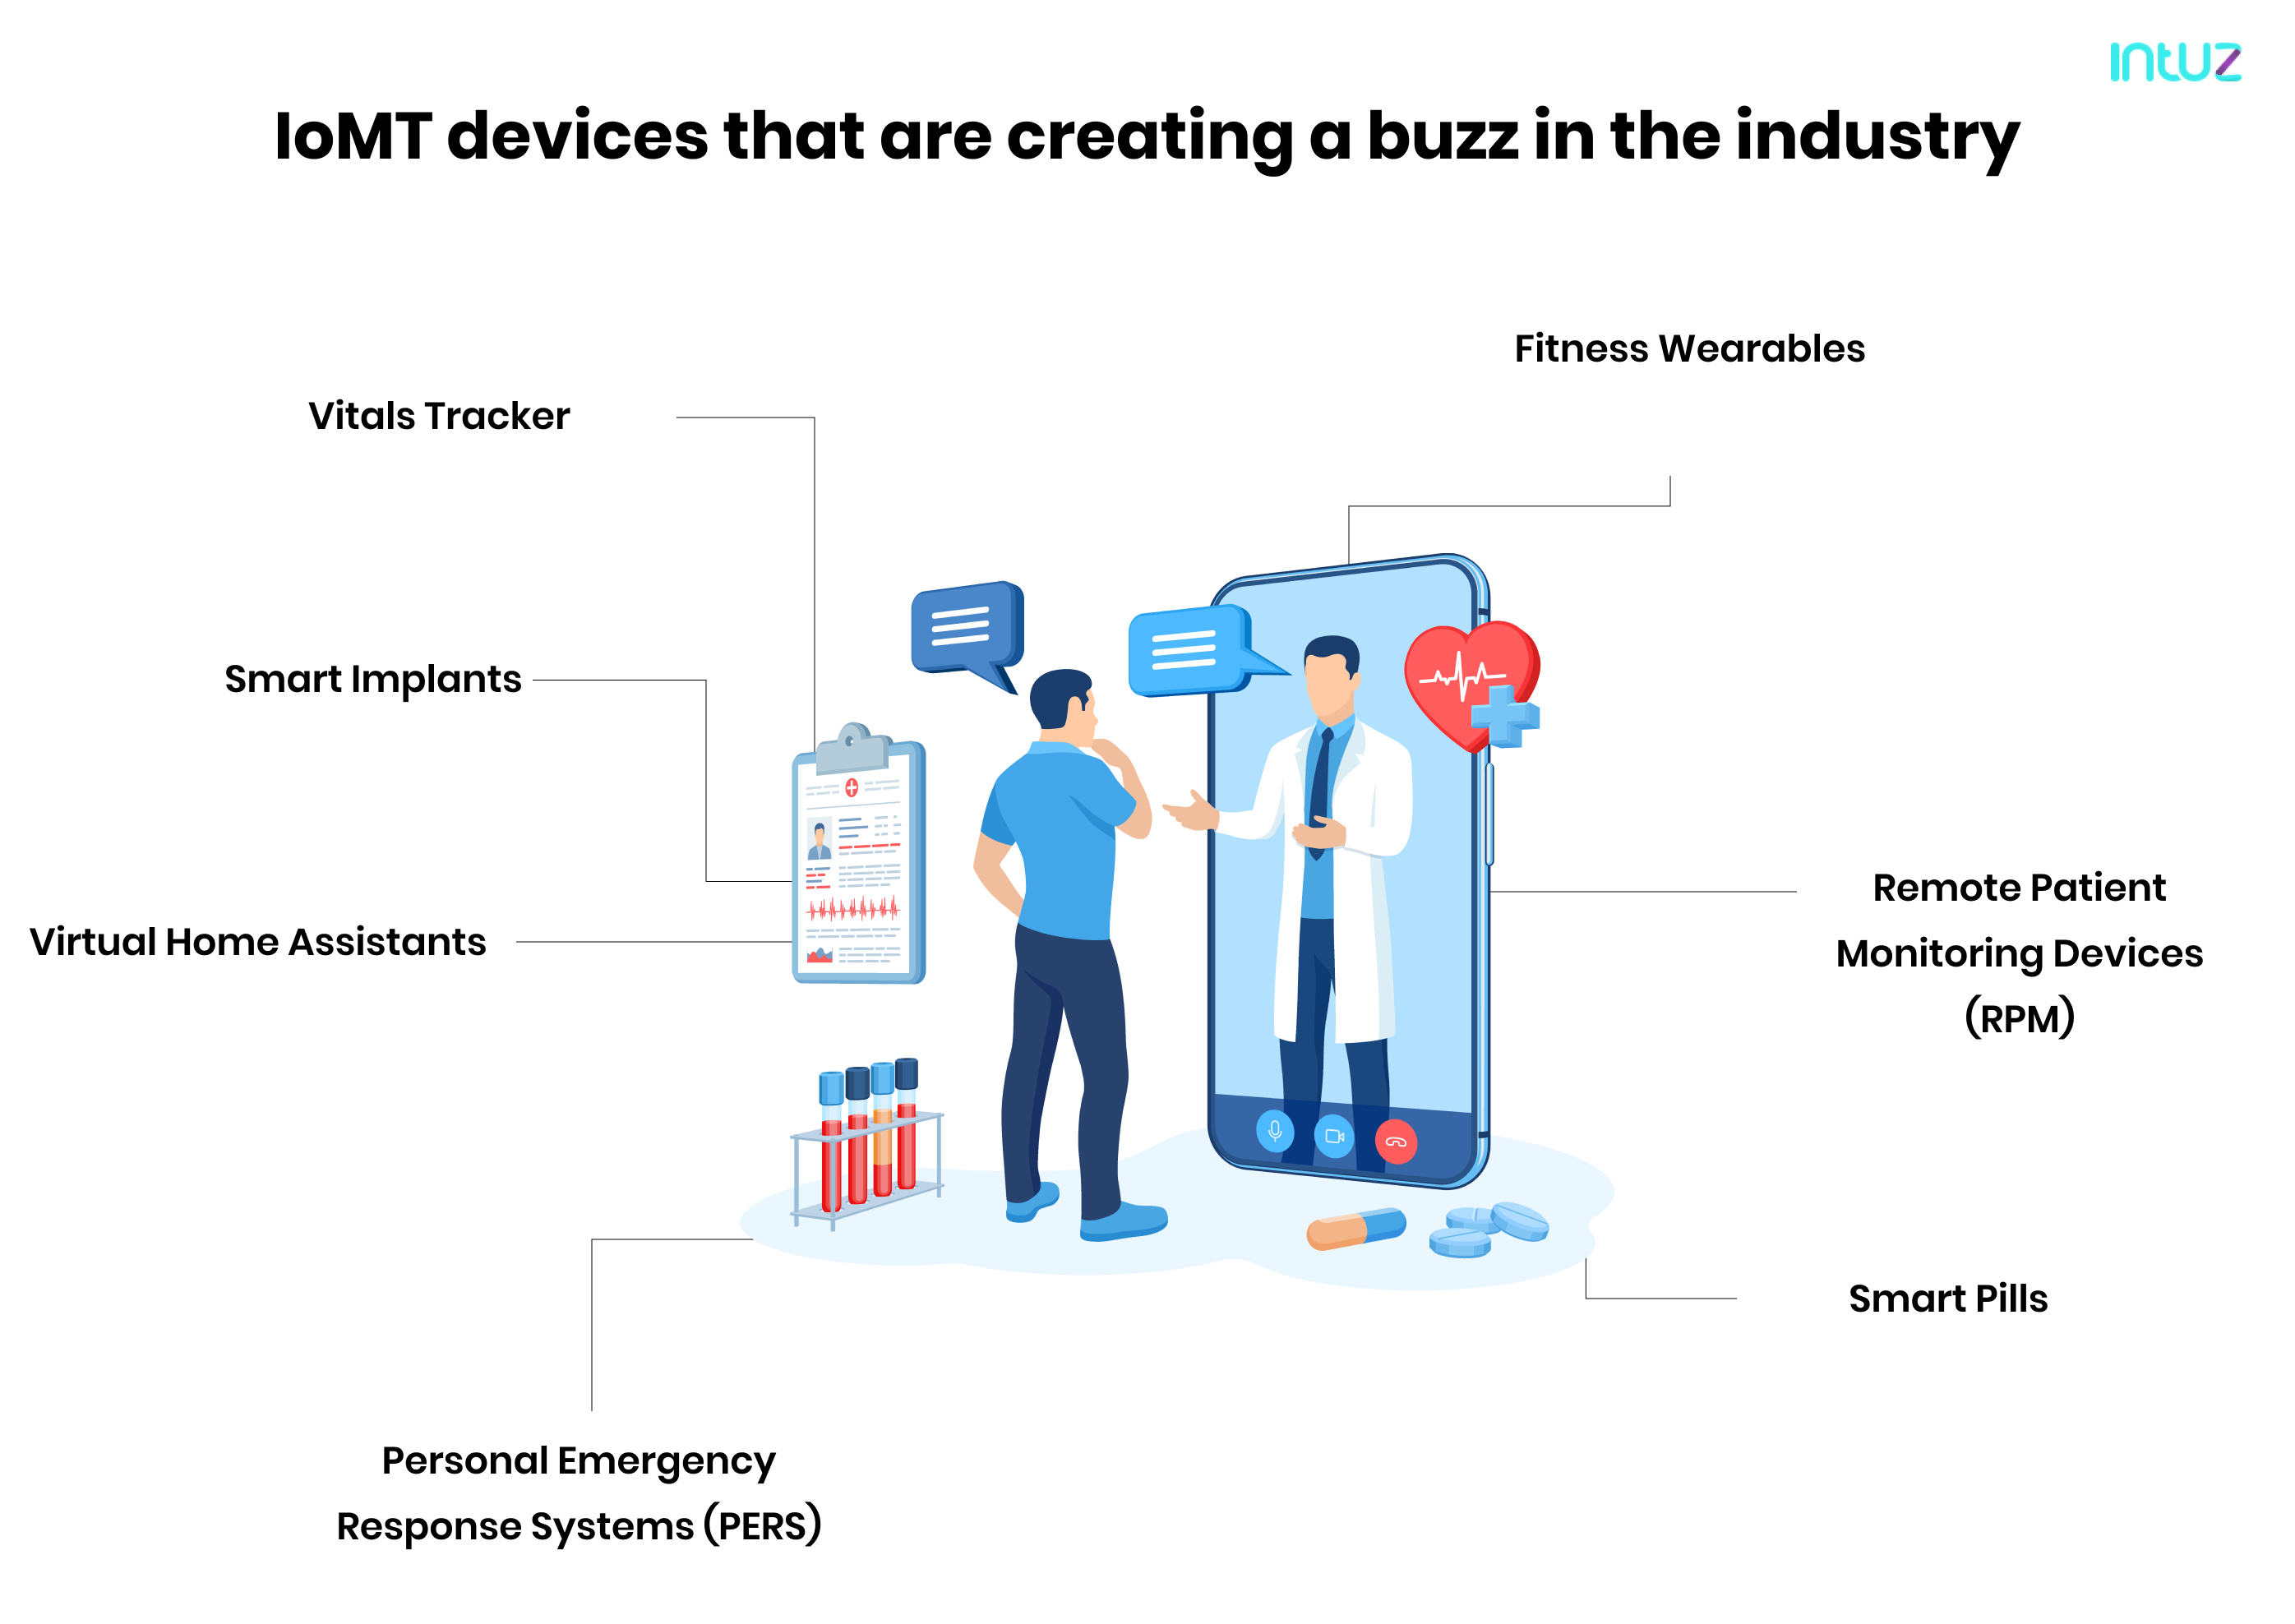 IOMT devices that are creating a buzz